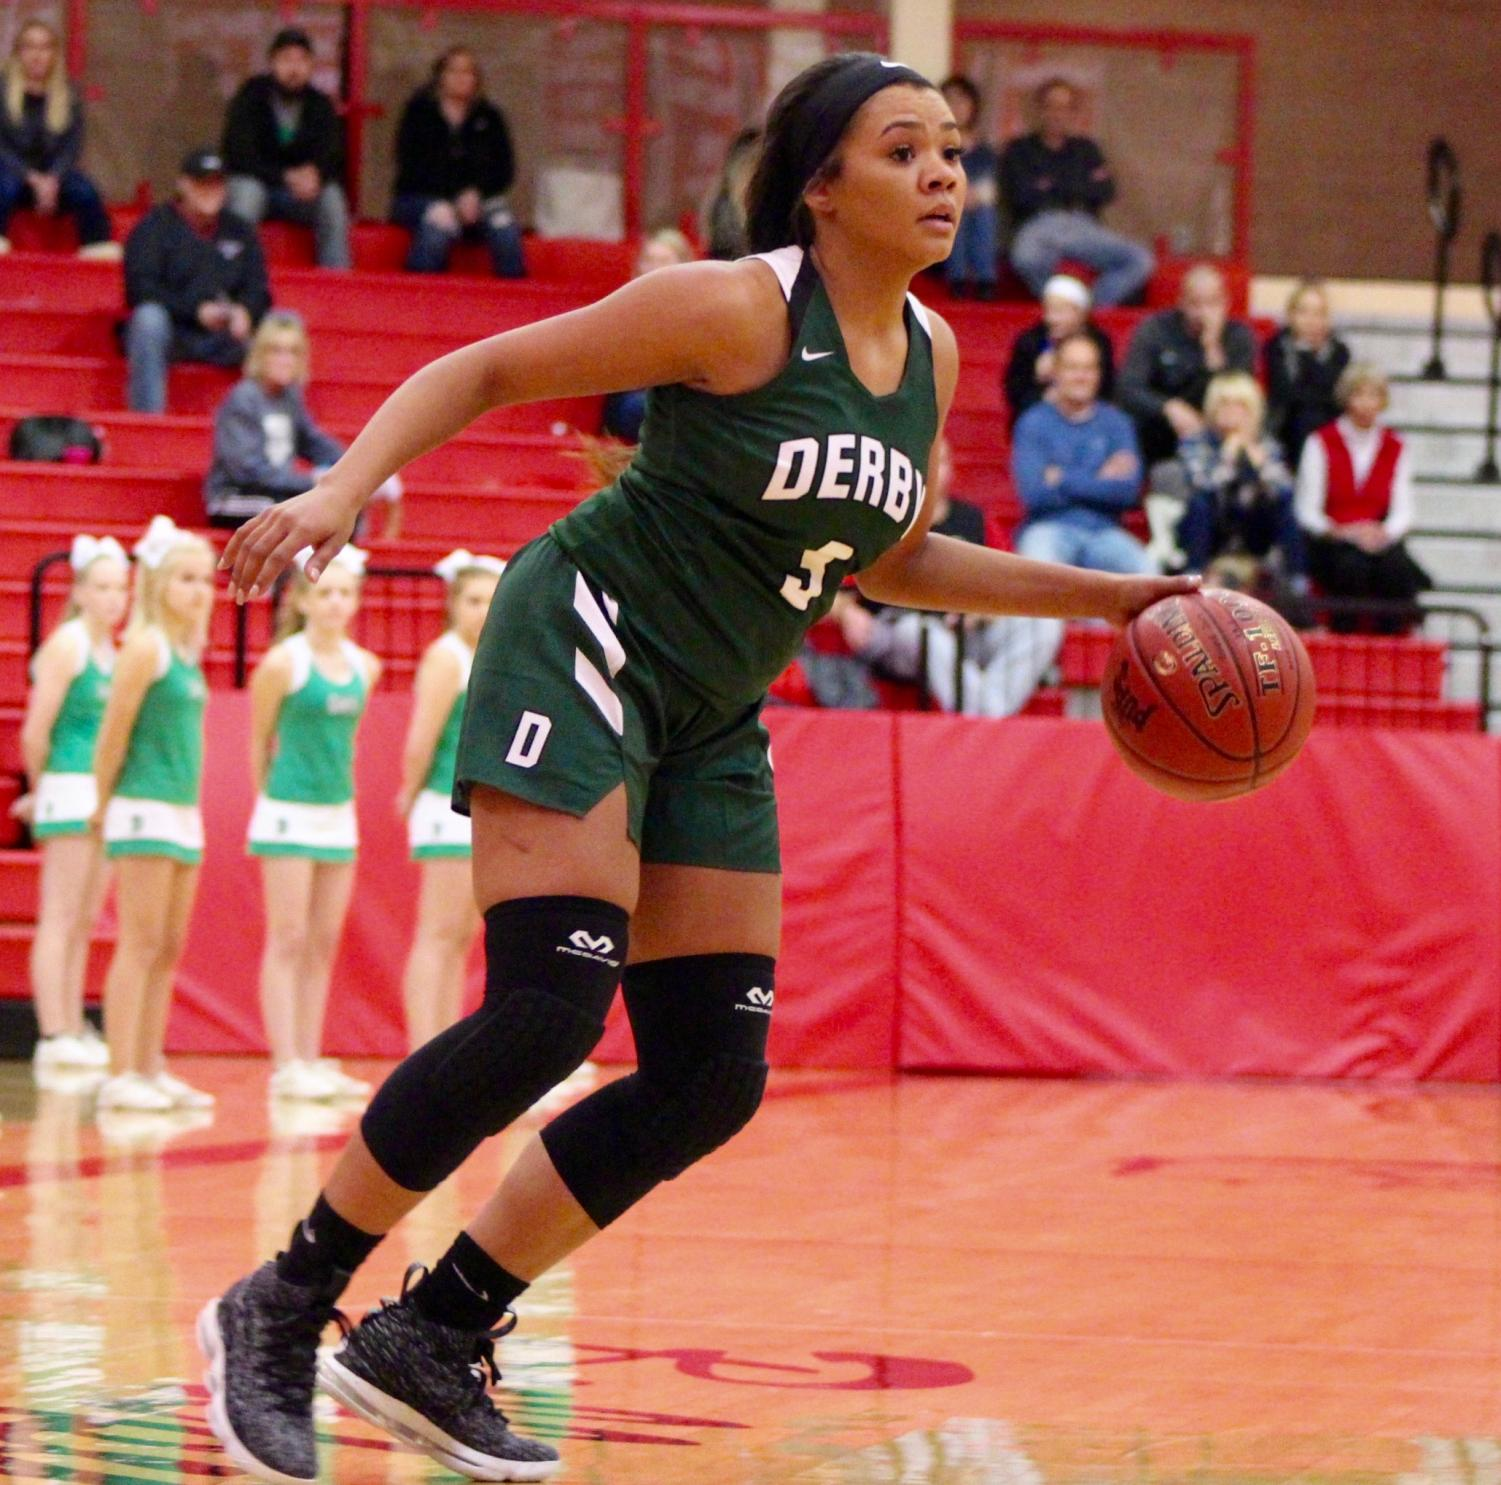 Junior+Aliyah+Meyers+dribbles+while+looking+for+a+teammate+to+pass+the+ball+to.